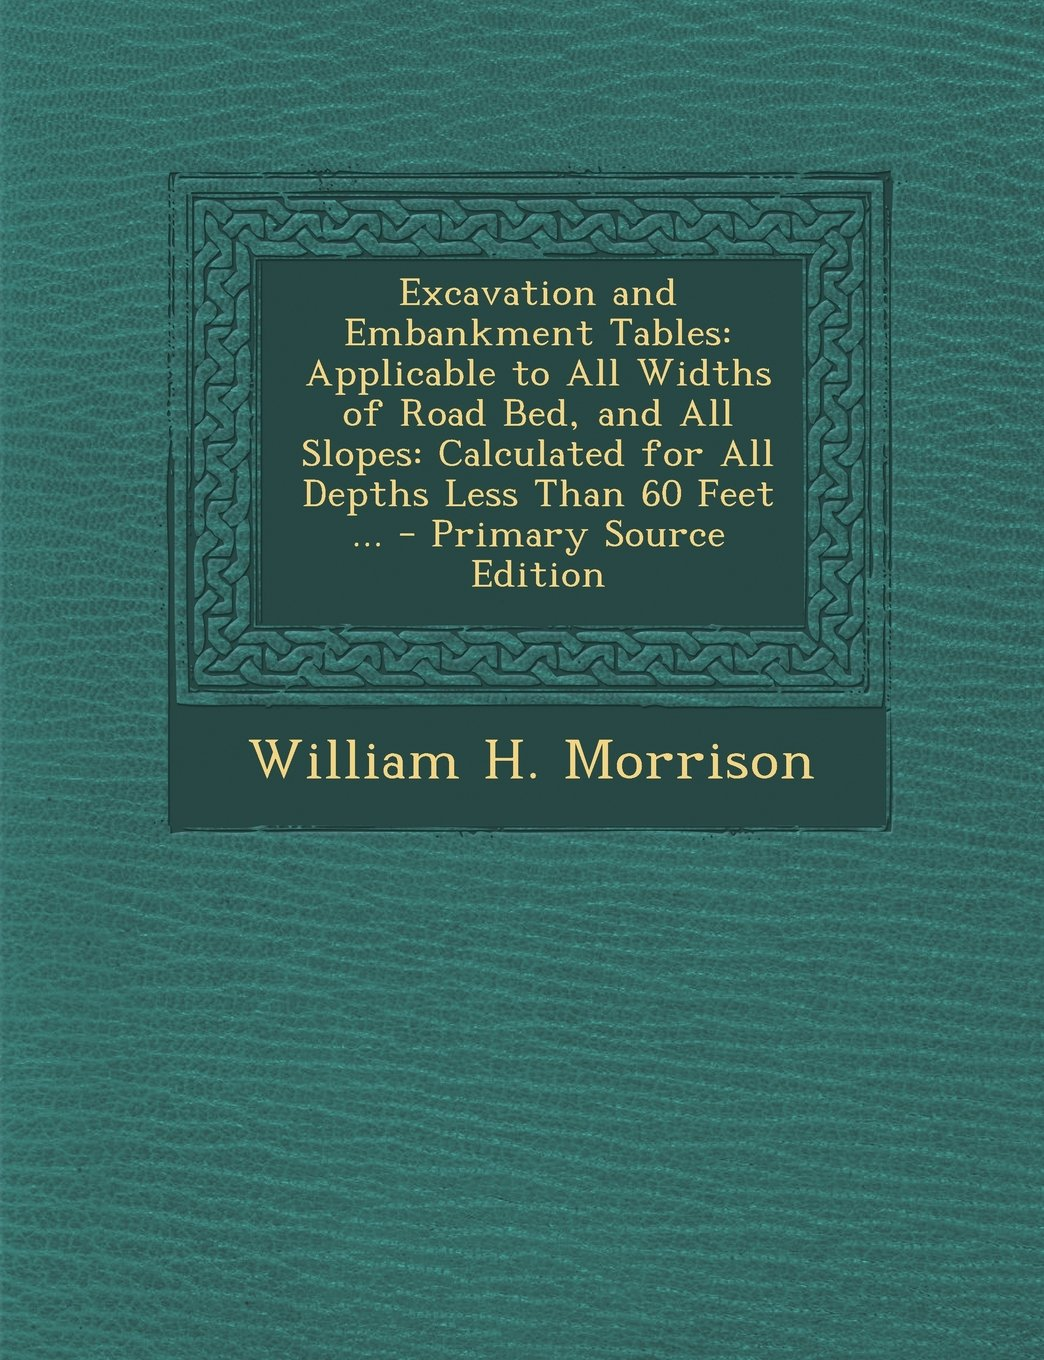 Excavation and Embankment Tables: Applicable to All Widths of Road Bed, and All Slopes: Calculated for All Depths Less Than 60 Feet ... - Primary Sour pdf